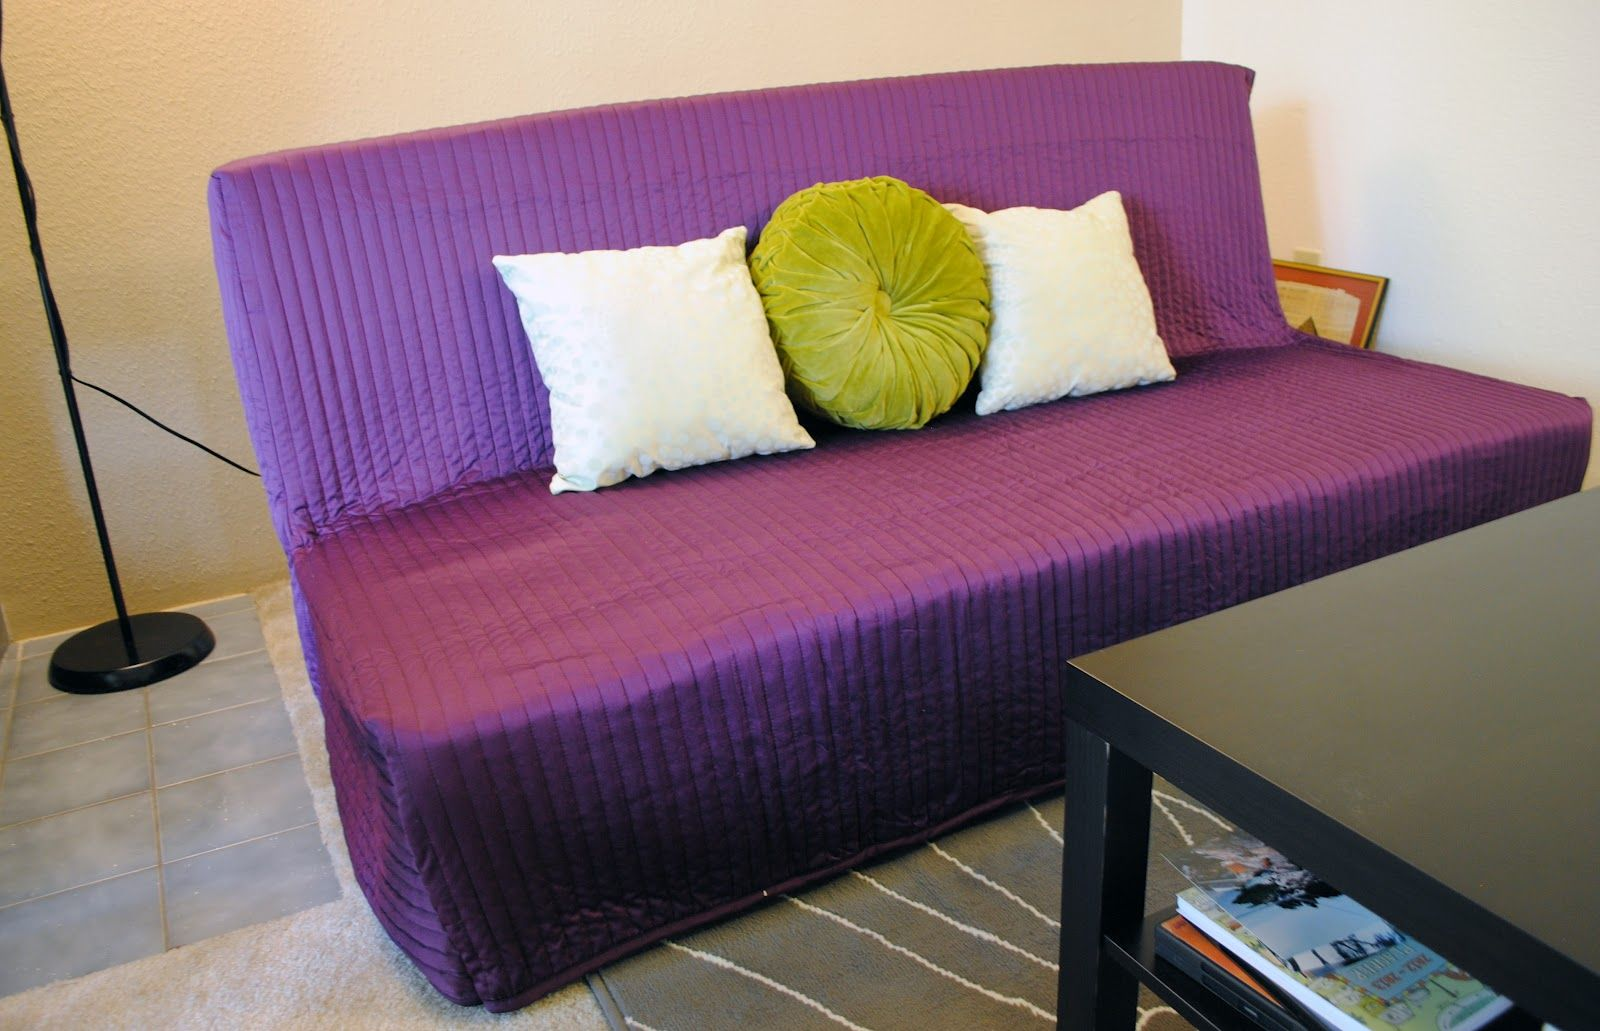 Diy Ikea Bedspread To Sofabed Cover Outdoor Furniture Design Outdoor Furniture Cushions Slipcovers